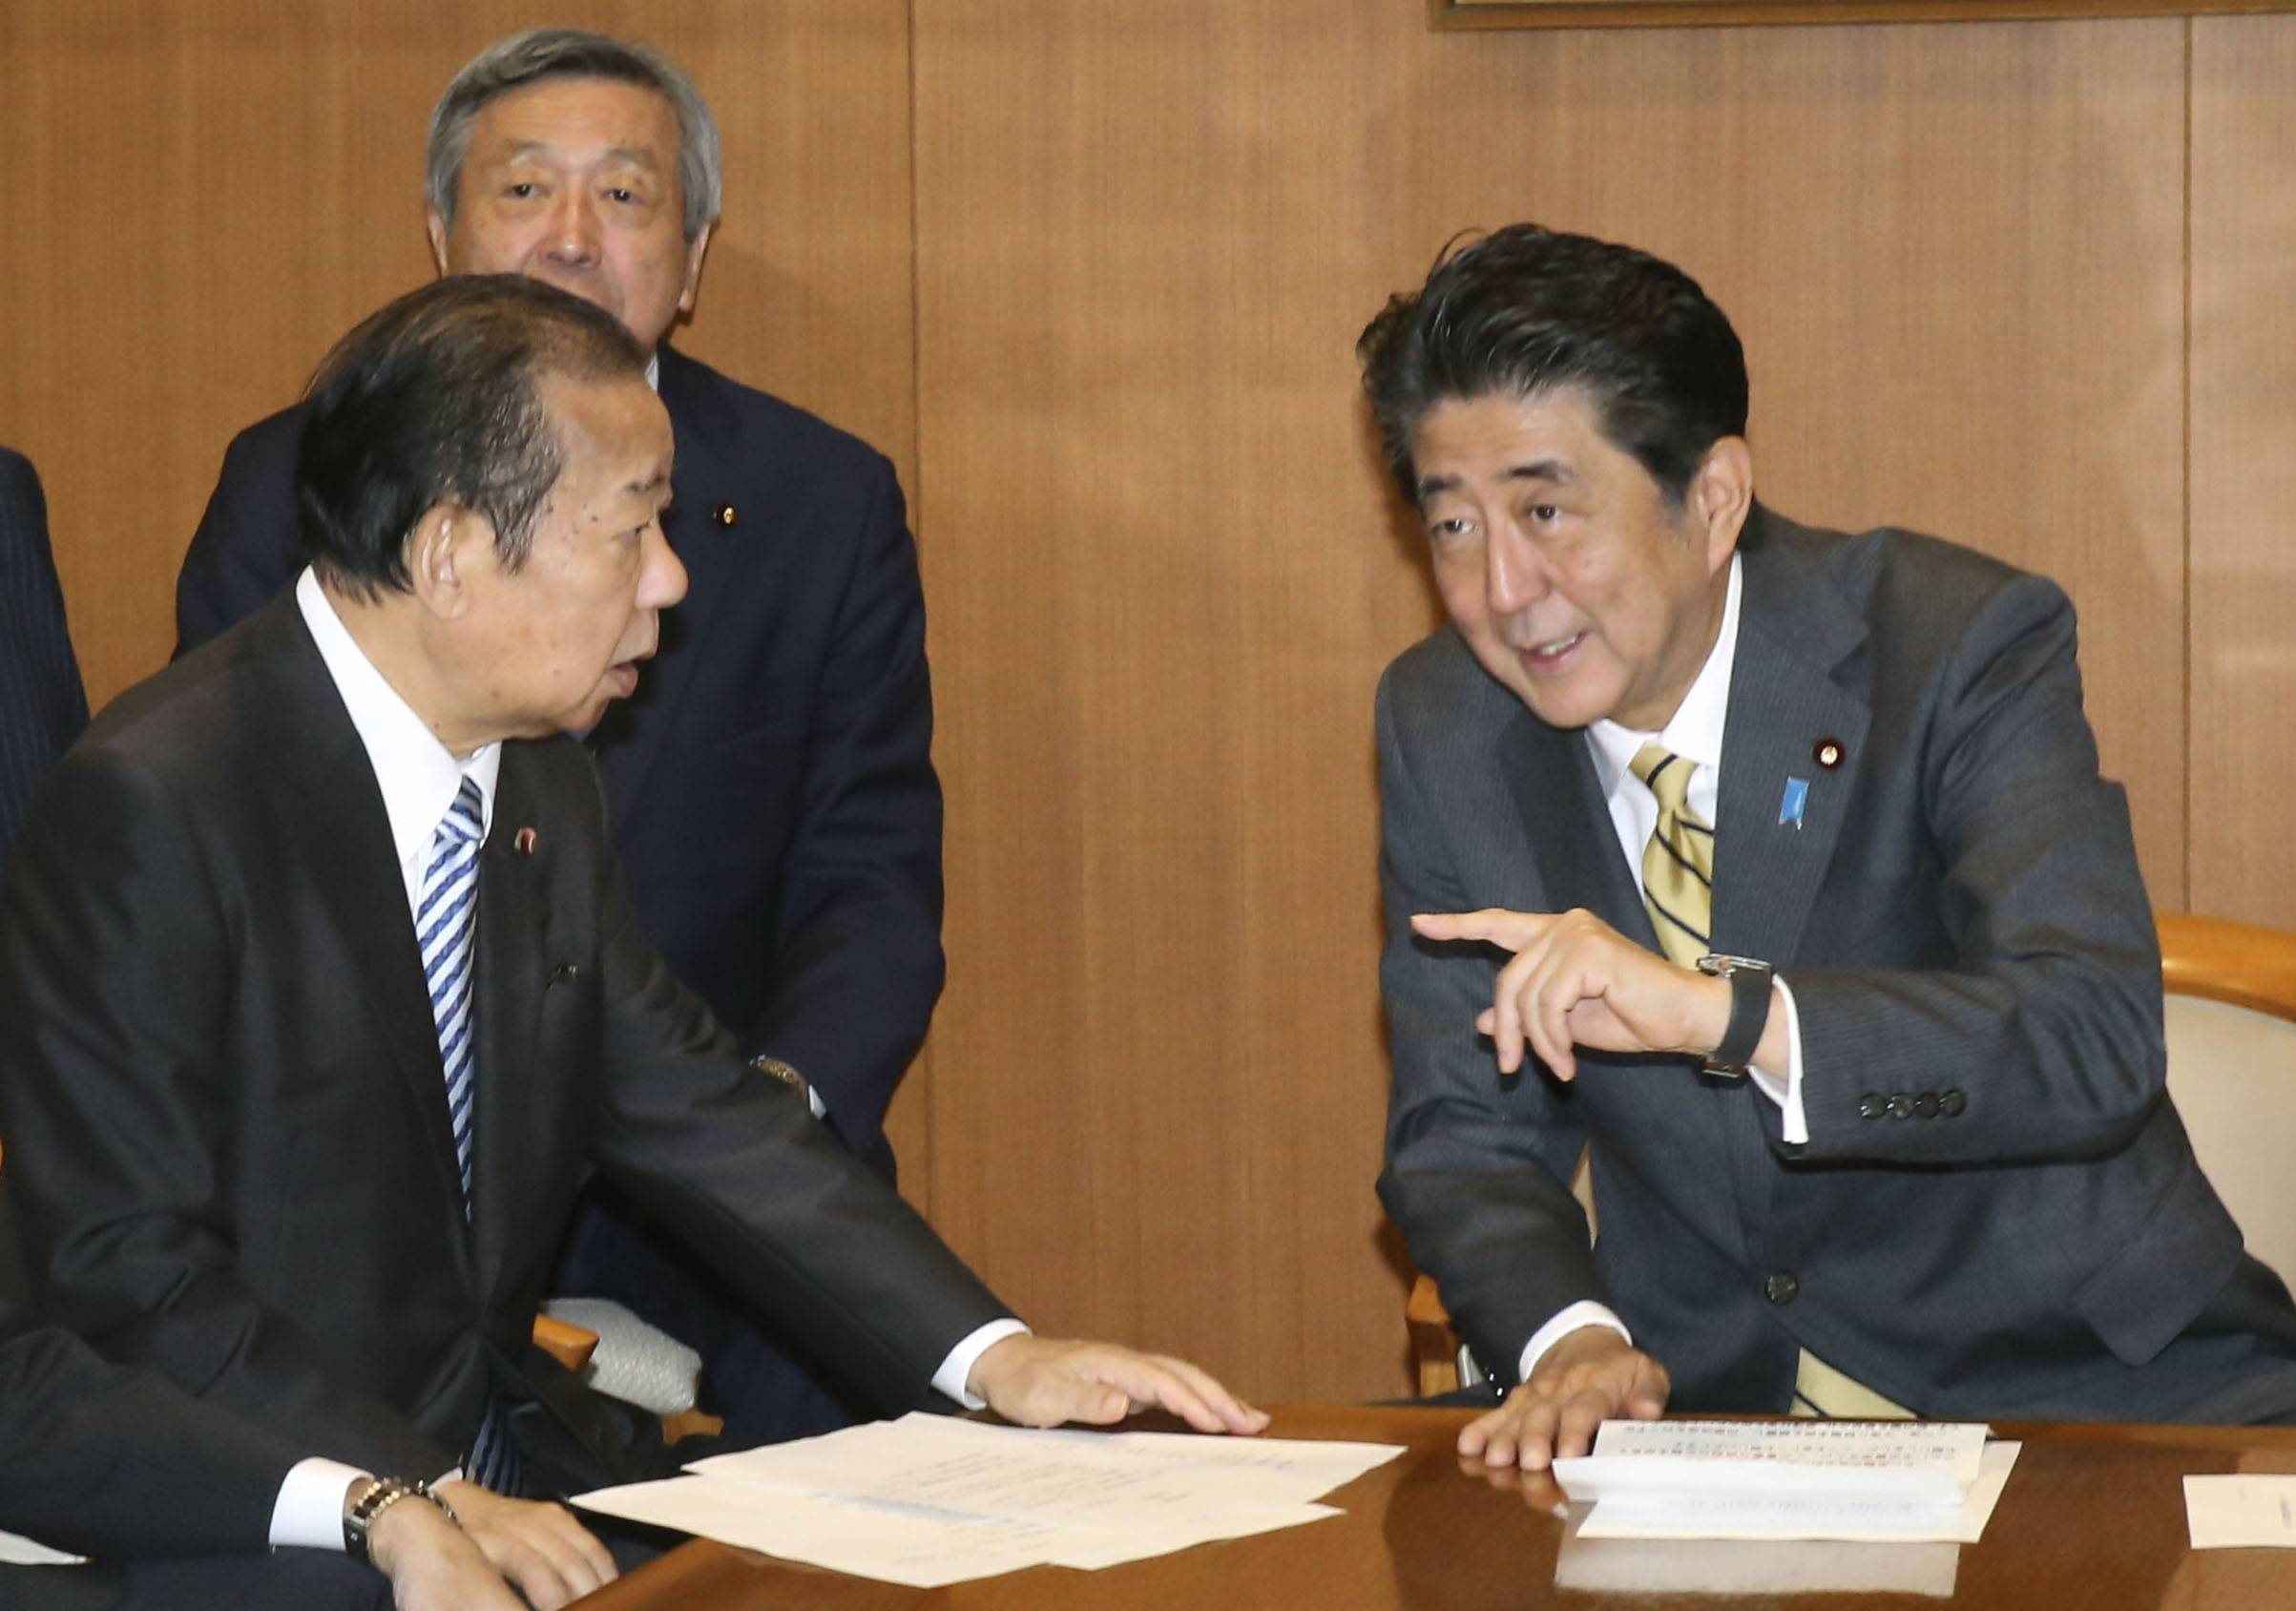 Prime Minister Shinzo Abe speaks with Toshihiro Nikai, LDP secretary-general, at party headquarters in Tokyo after a leadership shake-up on Sept. 11, 2019. | KYODO